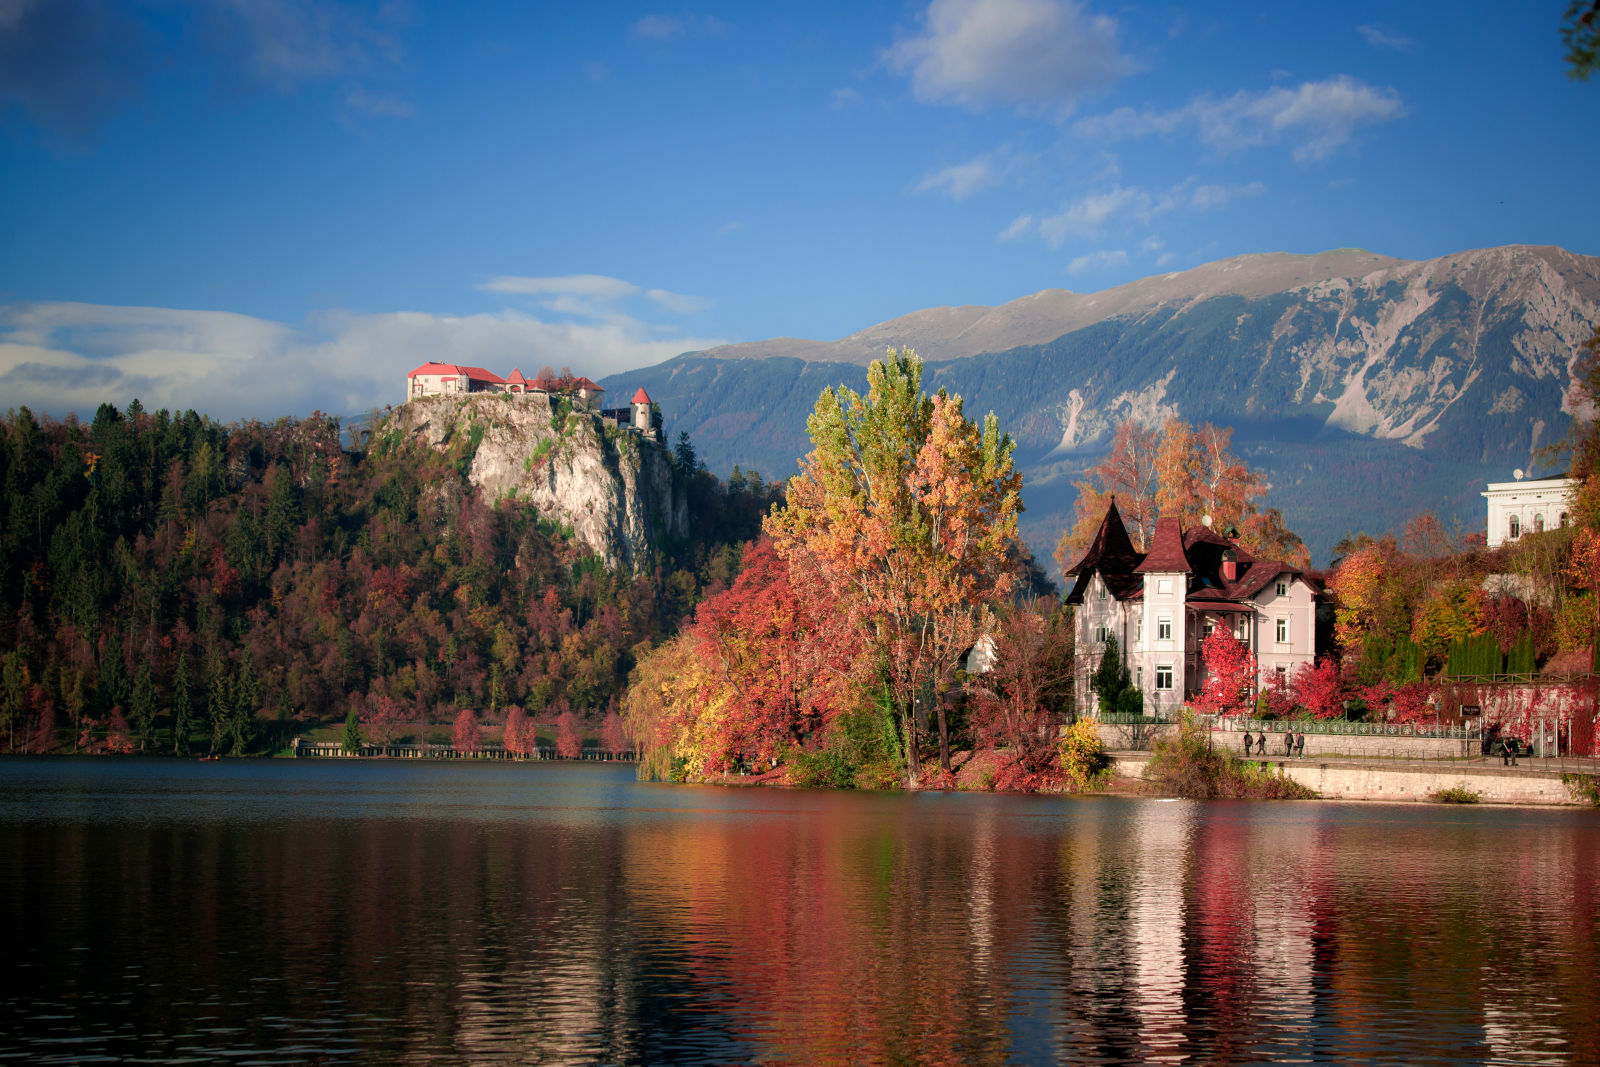 Bled Castle and Lake Bled in autumn